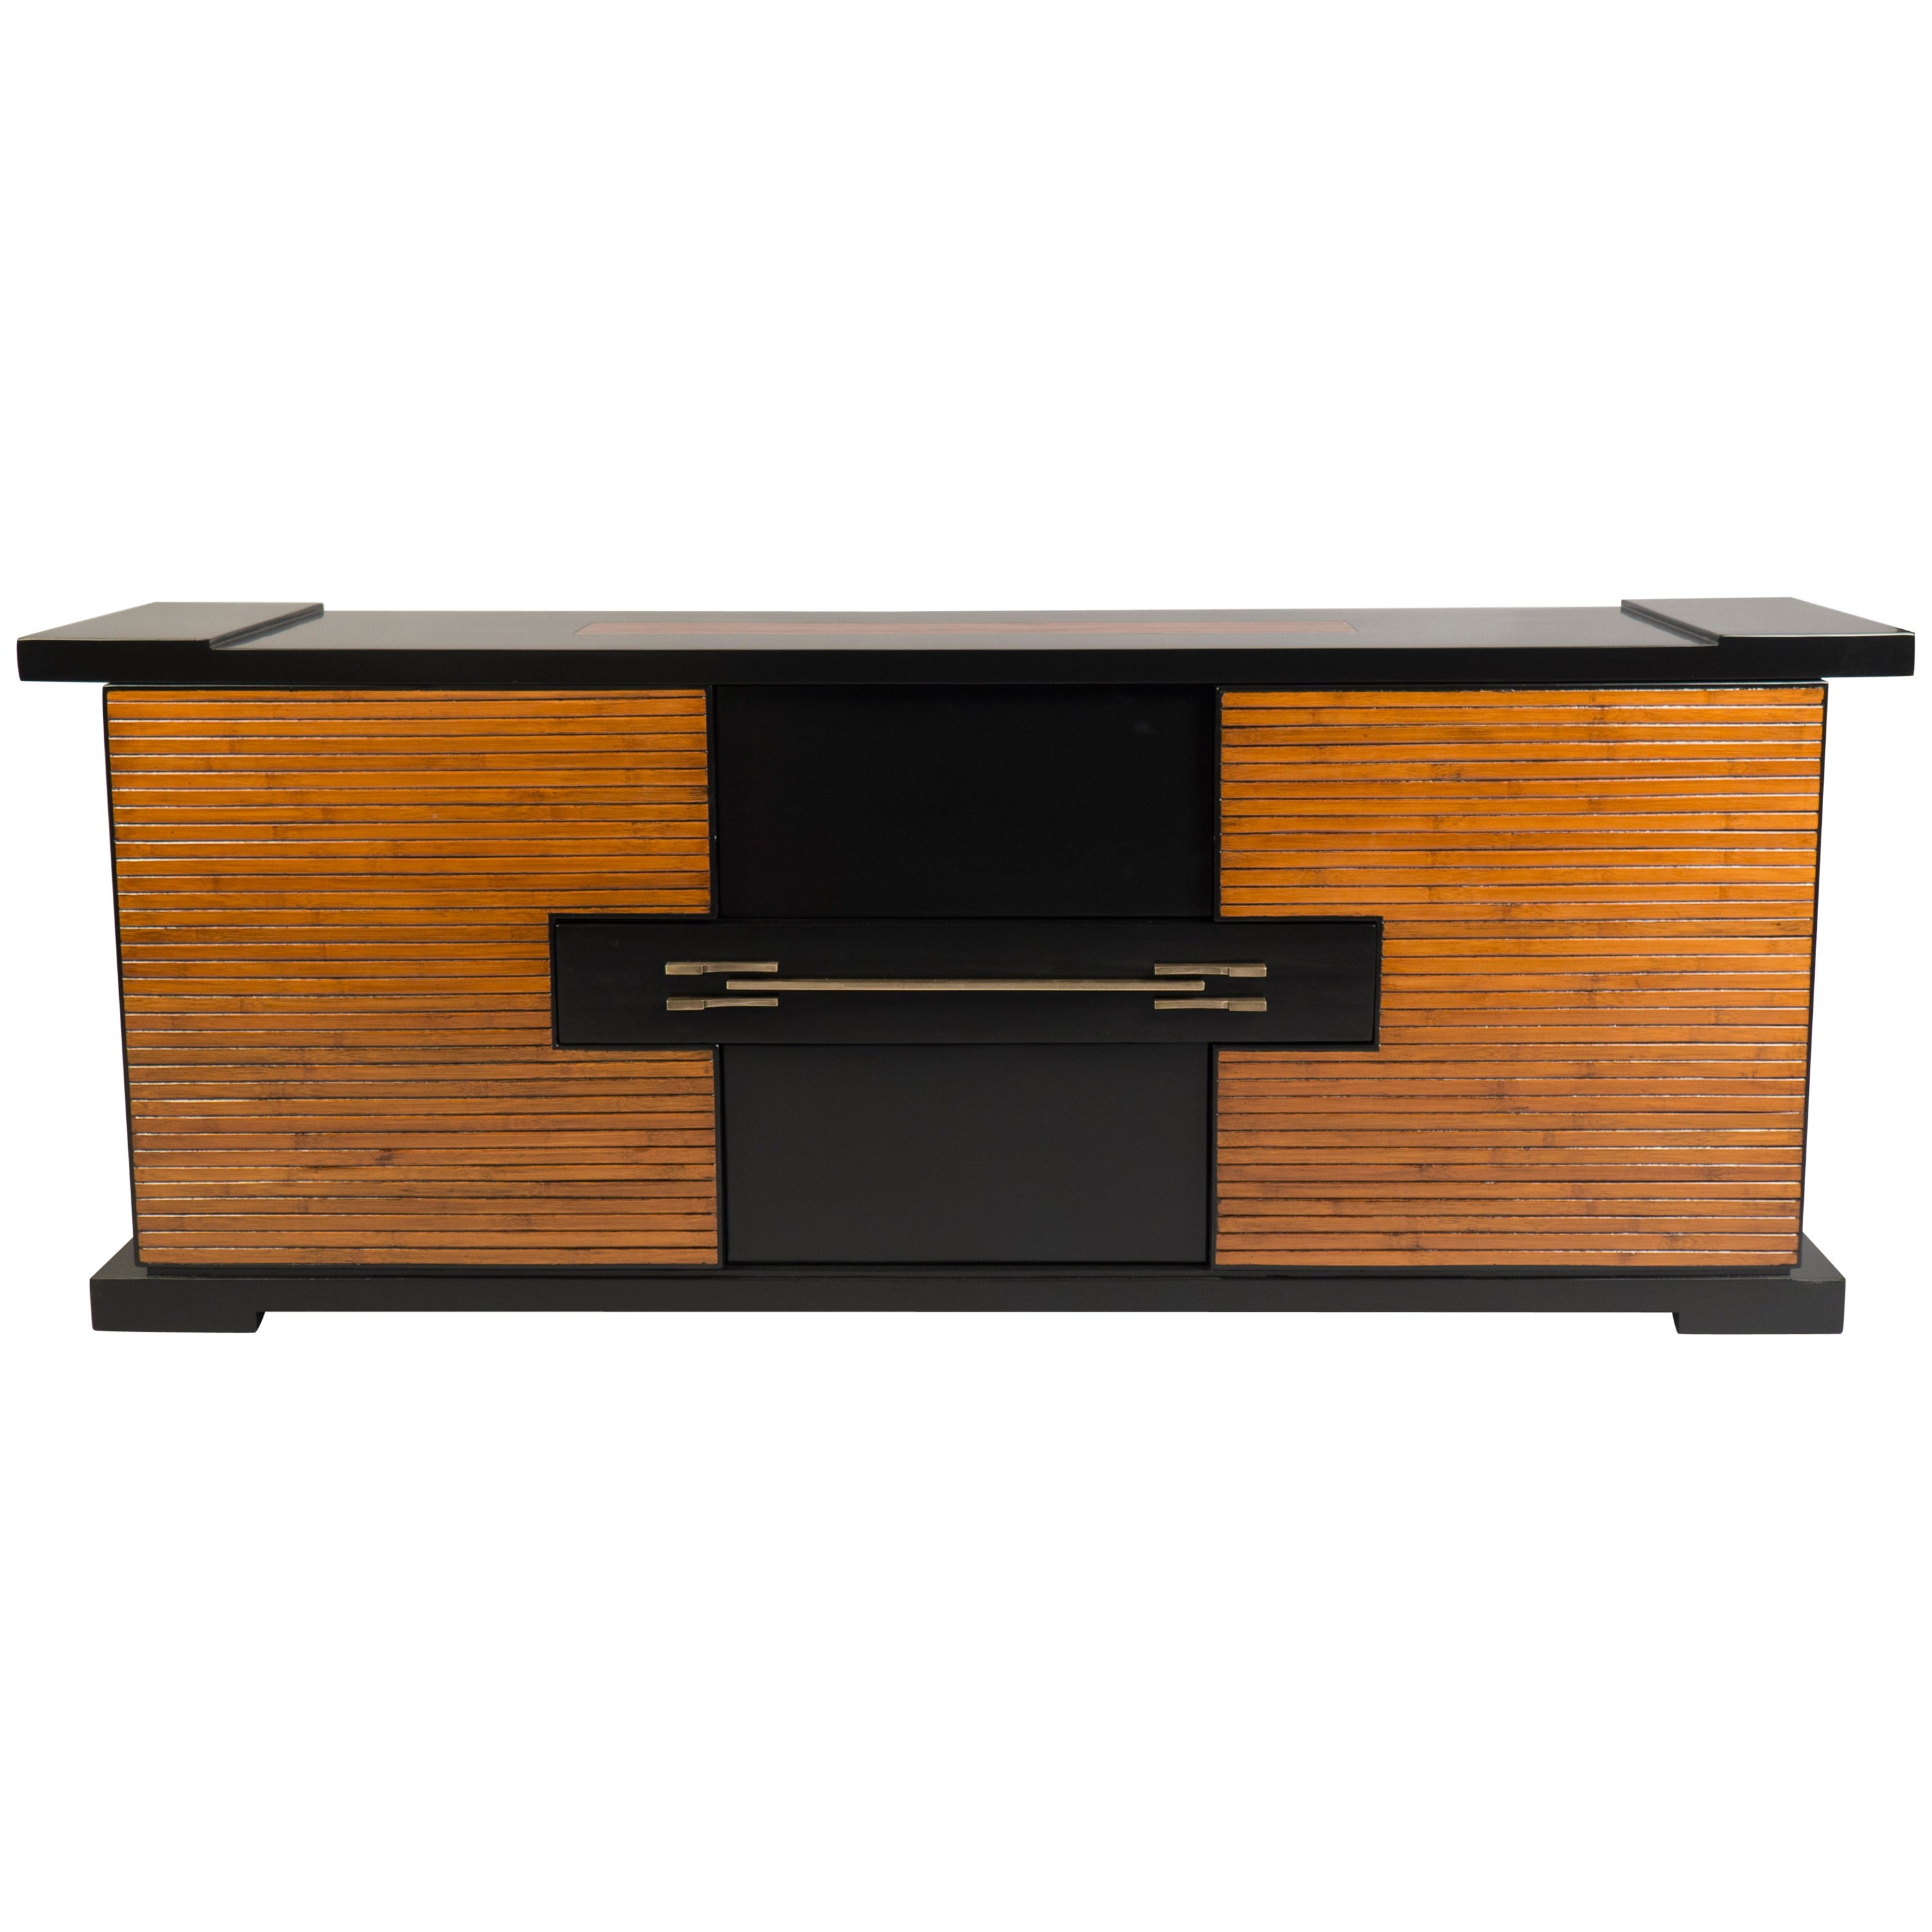 Sideboard, Italy, 1960s